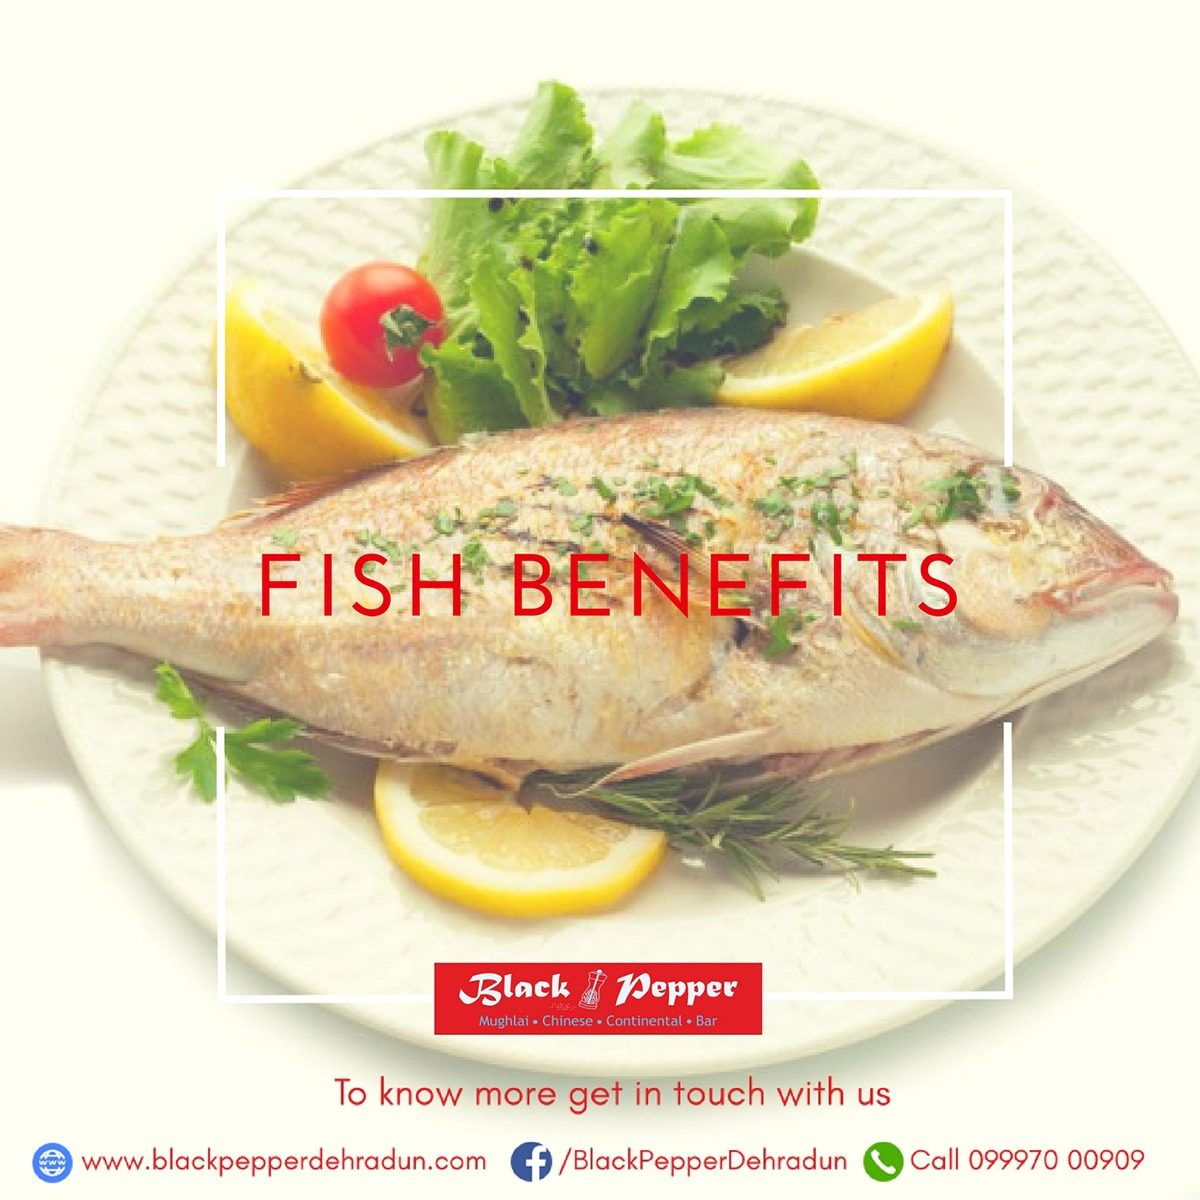 Black Pepper Restaurant: Incredible Benefits of eating Fish